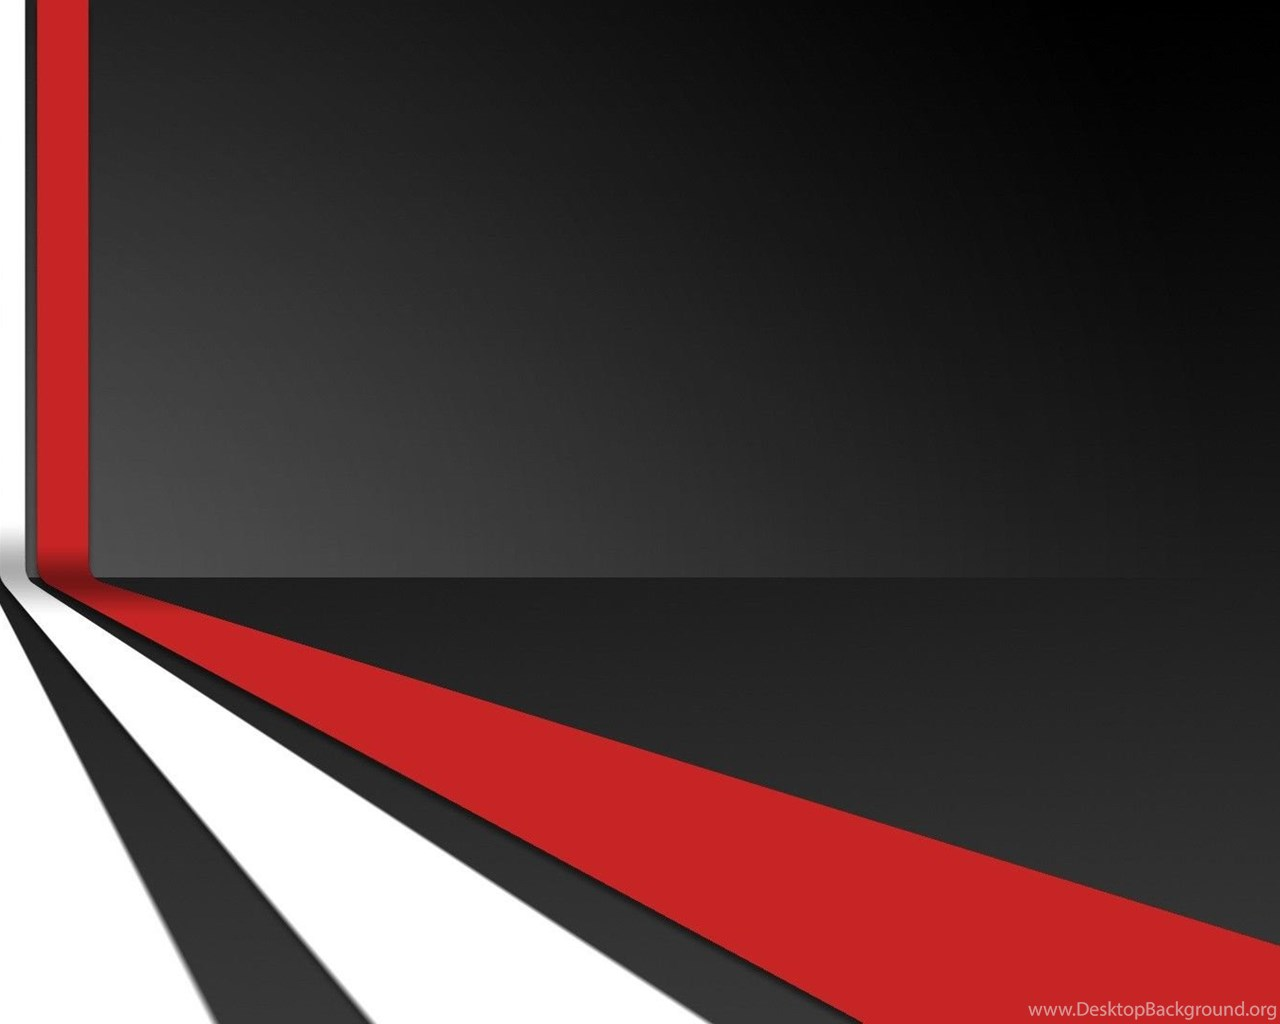 top red black white stripes wallpaper images for pinterest red white black background 4k 1280x1024 download hd wallpaper wallpapertip top red black white stripes wallpaper